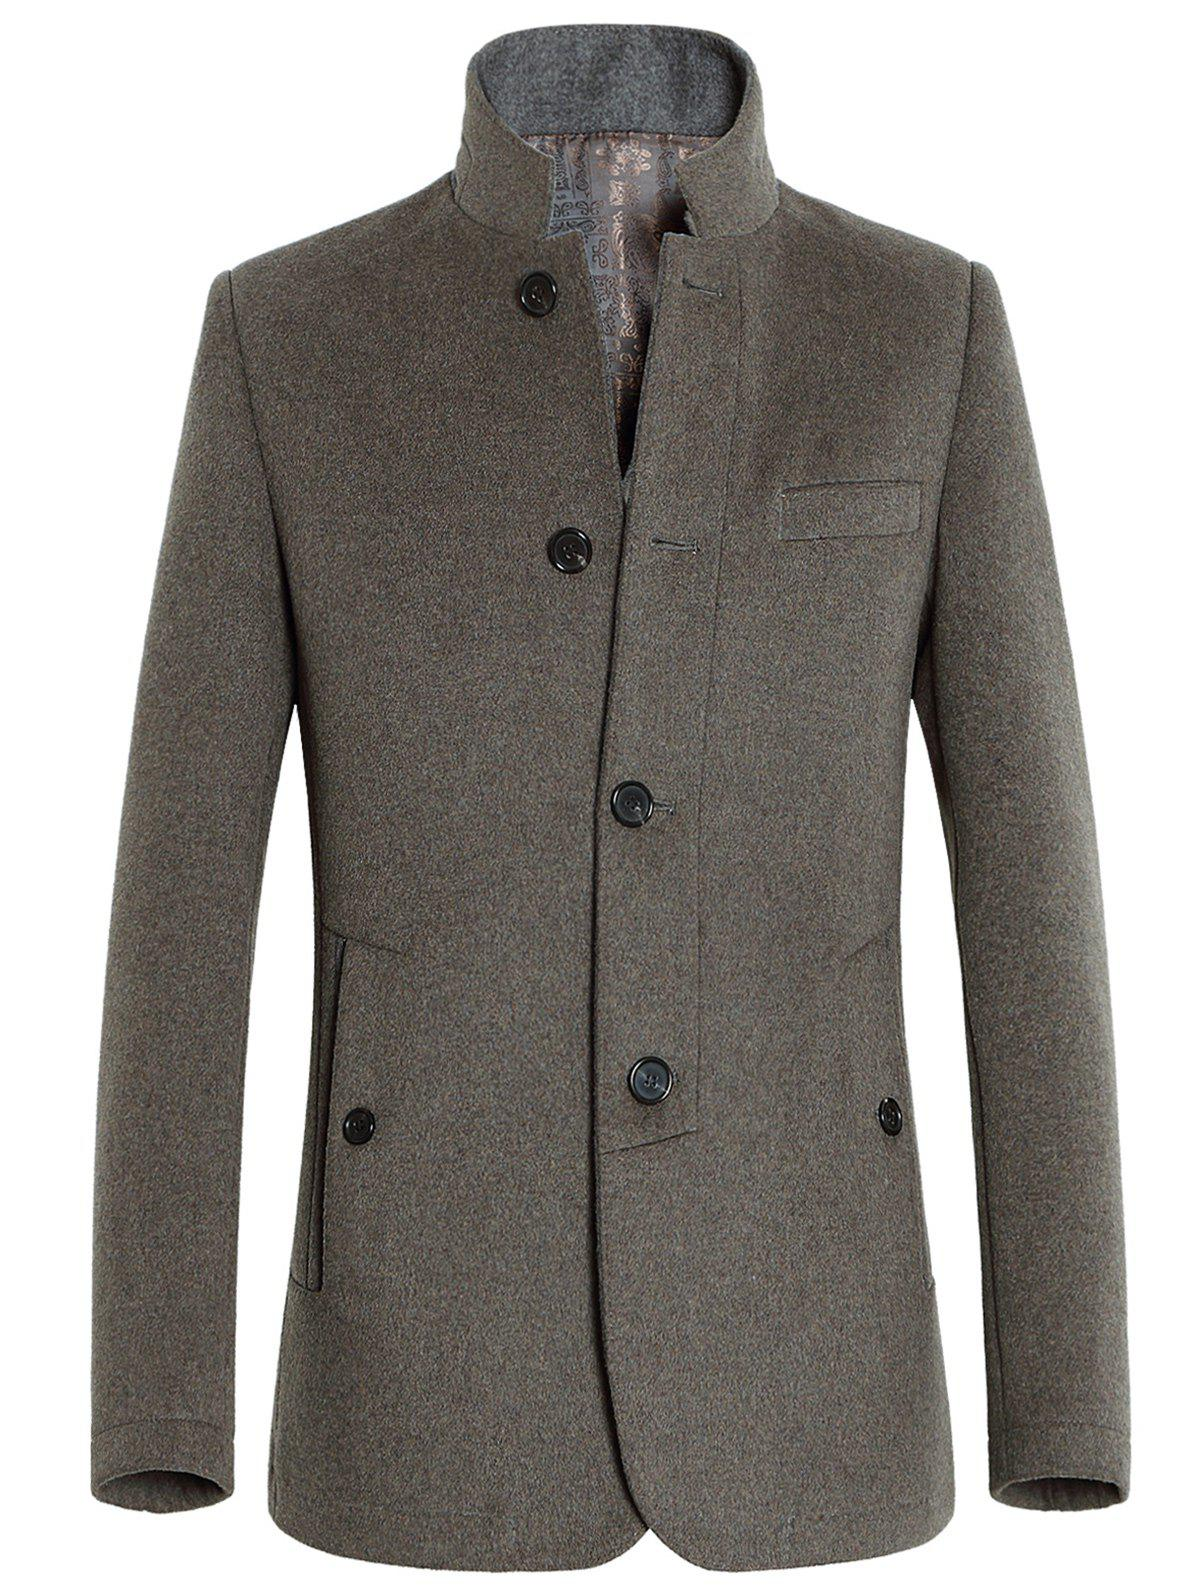 Pied de col single-breasted Coat Minceur Woolen - Camel M